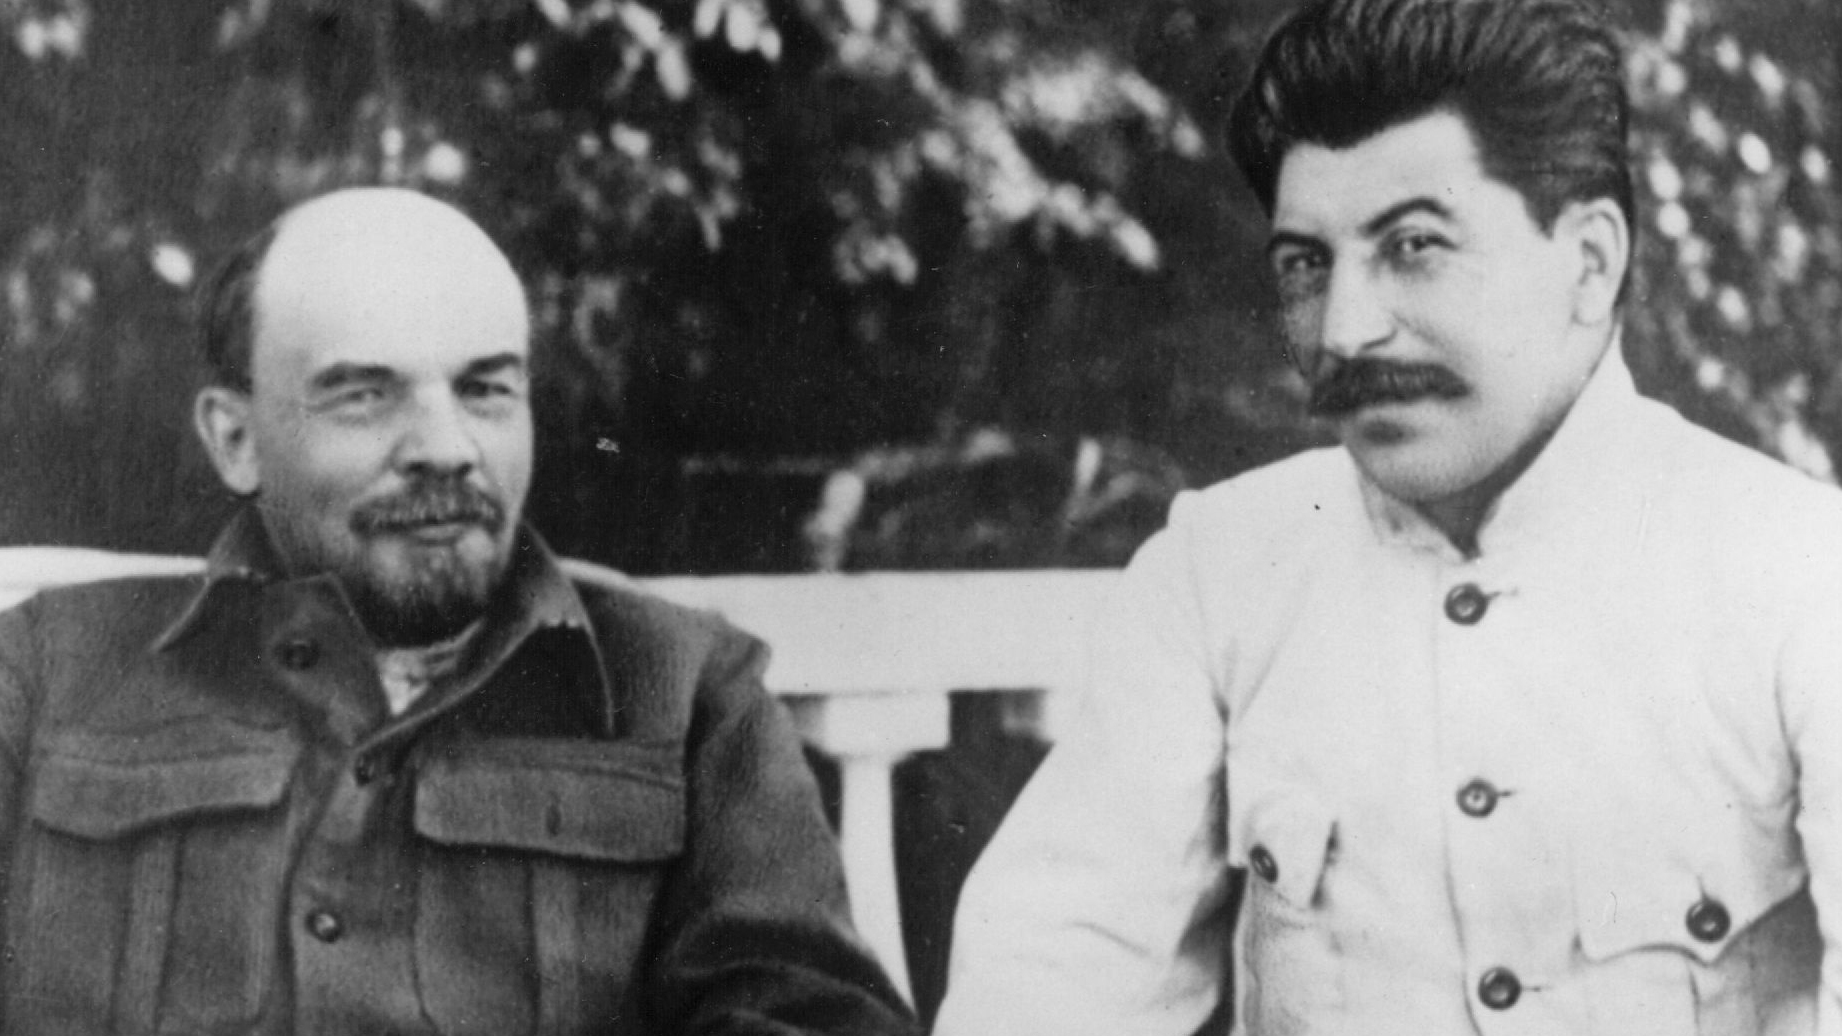 Lenin vs Stalin: Their Showdown Over the Birth of the USSR